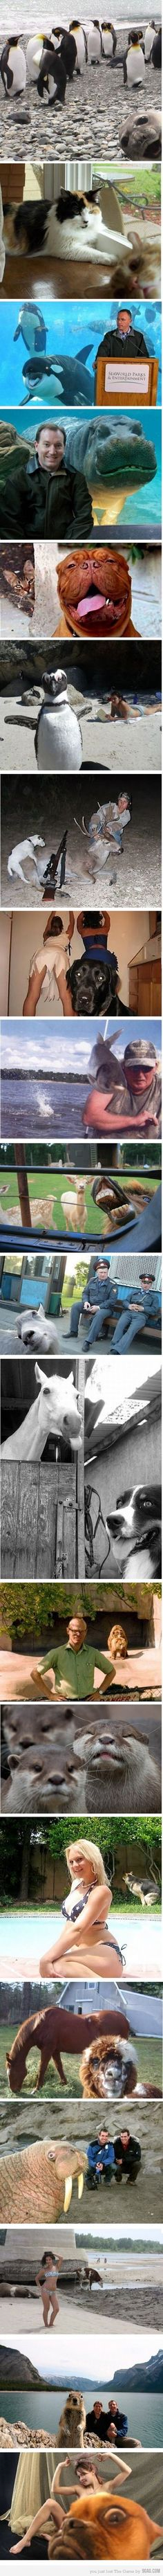 hahah animals are so funny